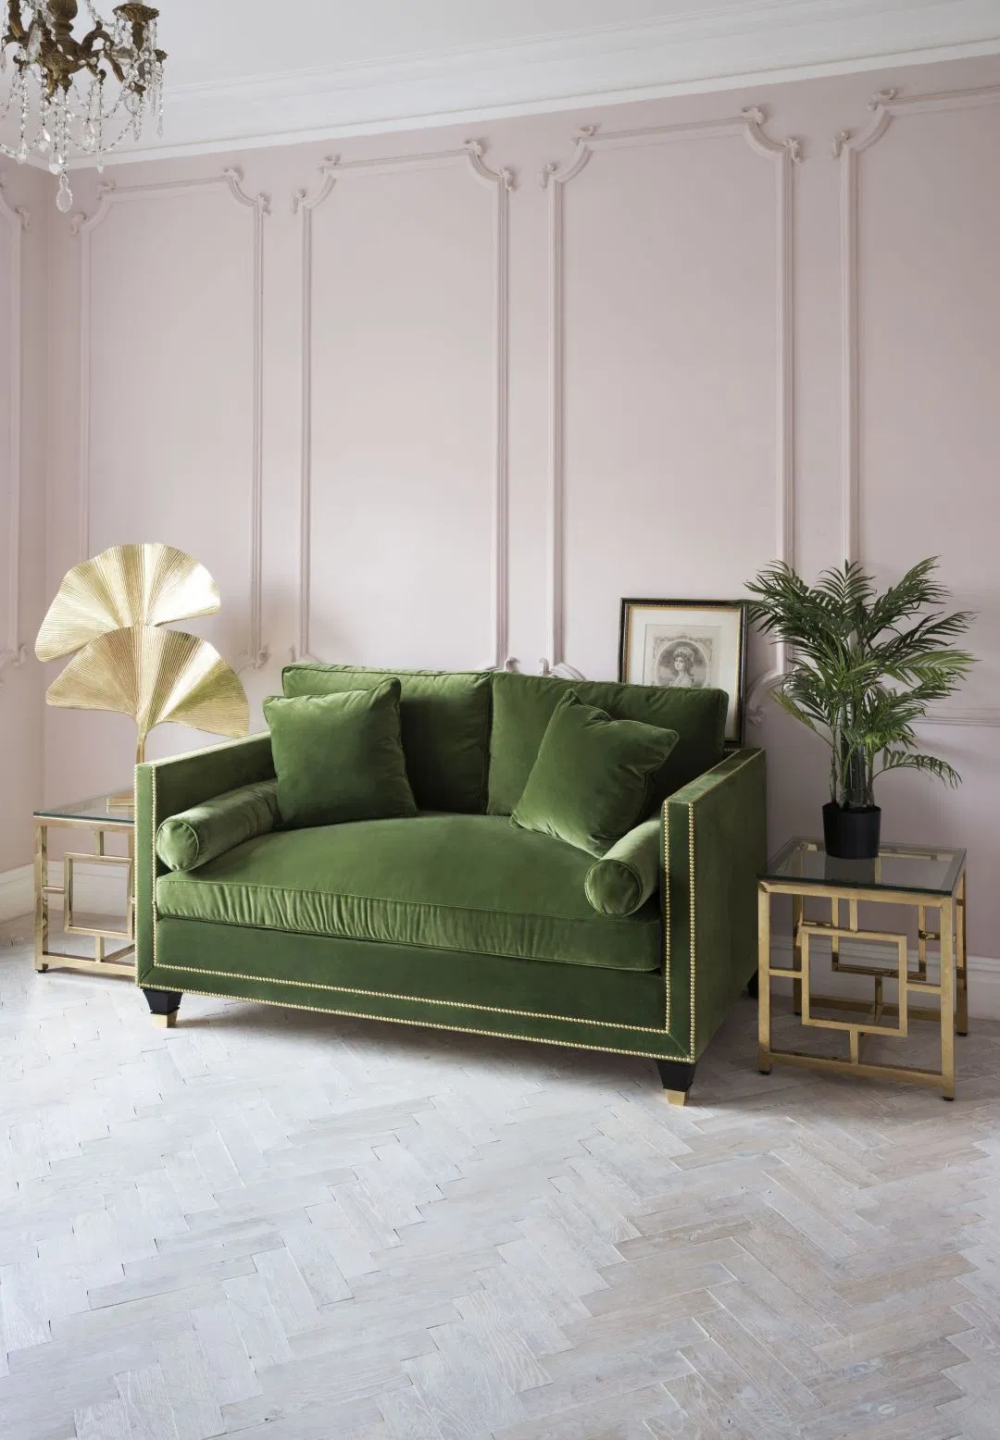 Pink And Green Rooms We Adore Alpha Kappa Alpha Decor Black Southern Belle Art Deco Living Room Art Deco Style Interior Interior Deco